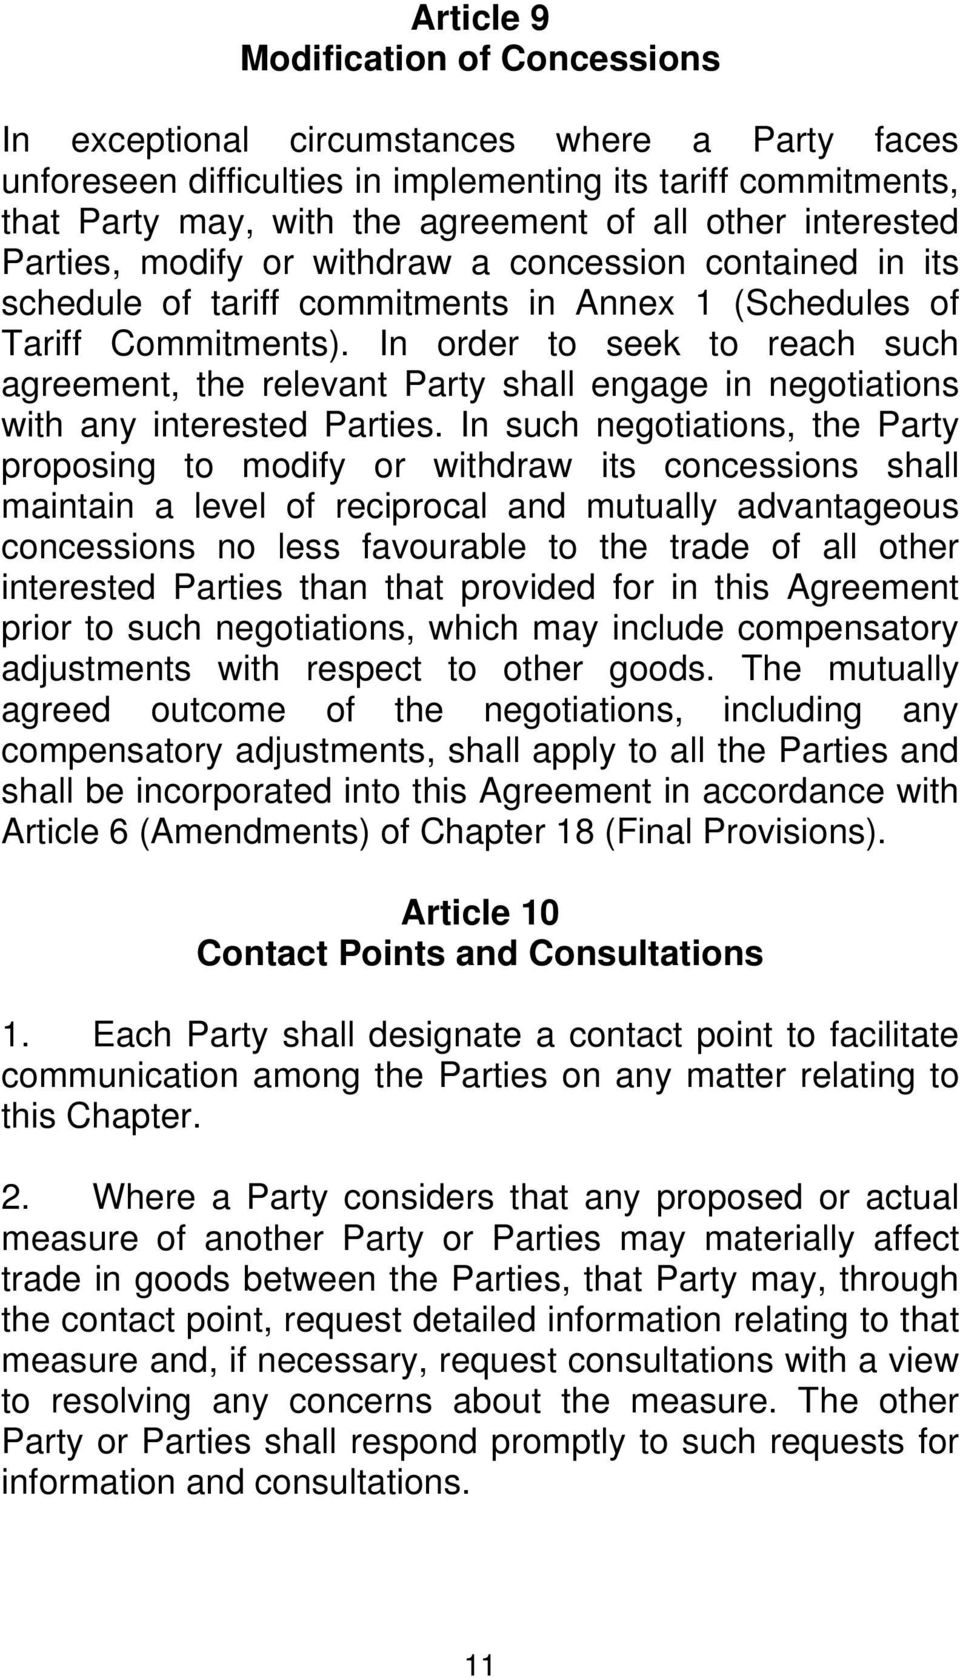 In order to seek to reach such agreement, the relevant Party shall engage in negotiations with any interested Parties.